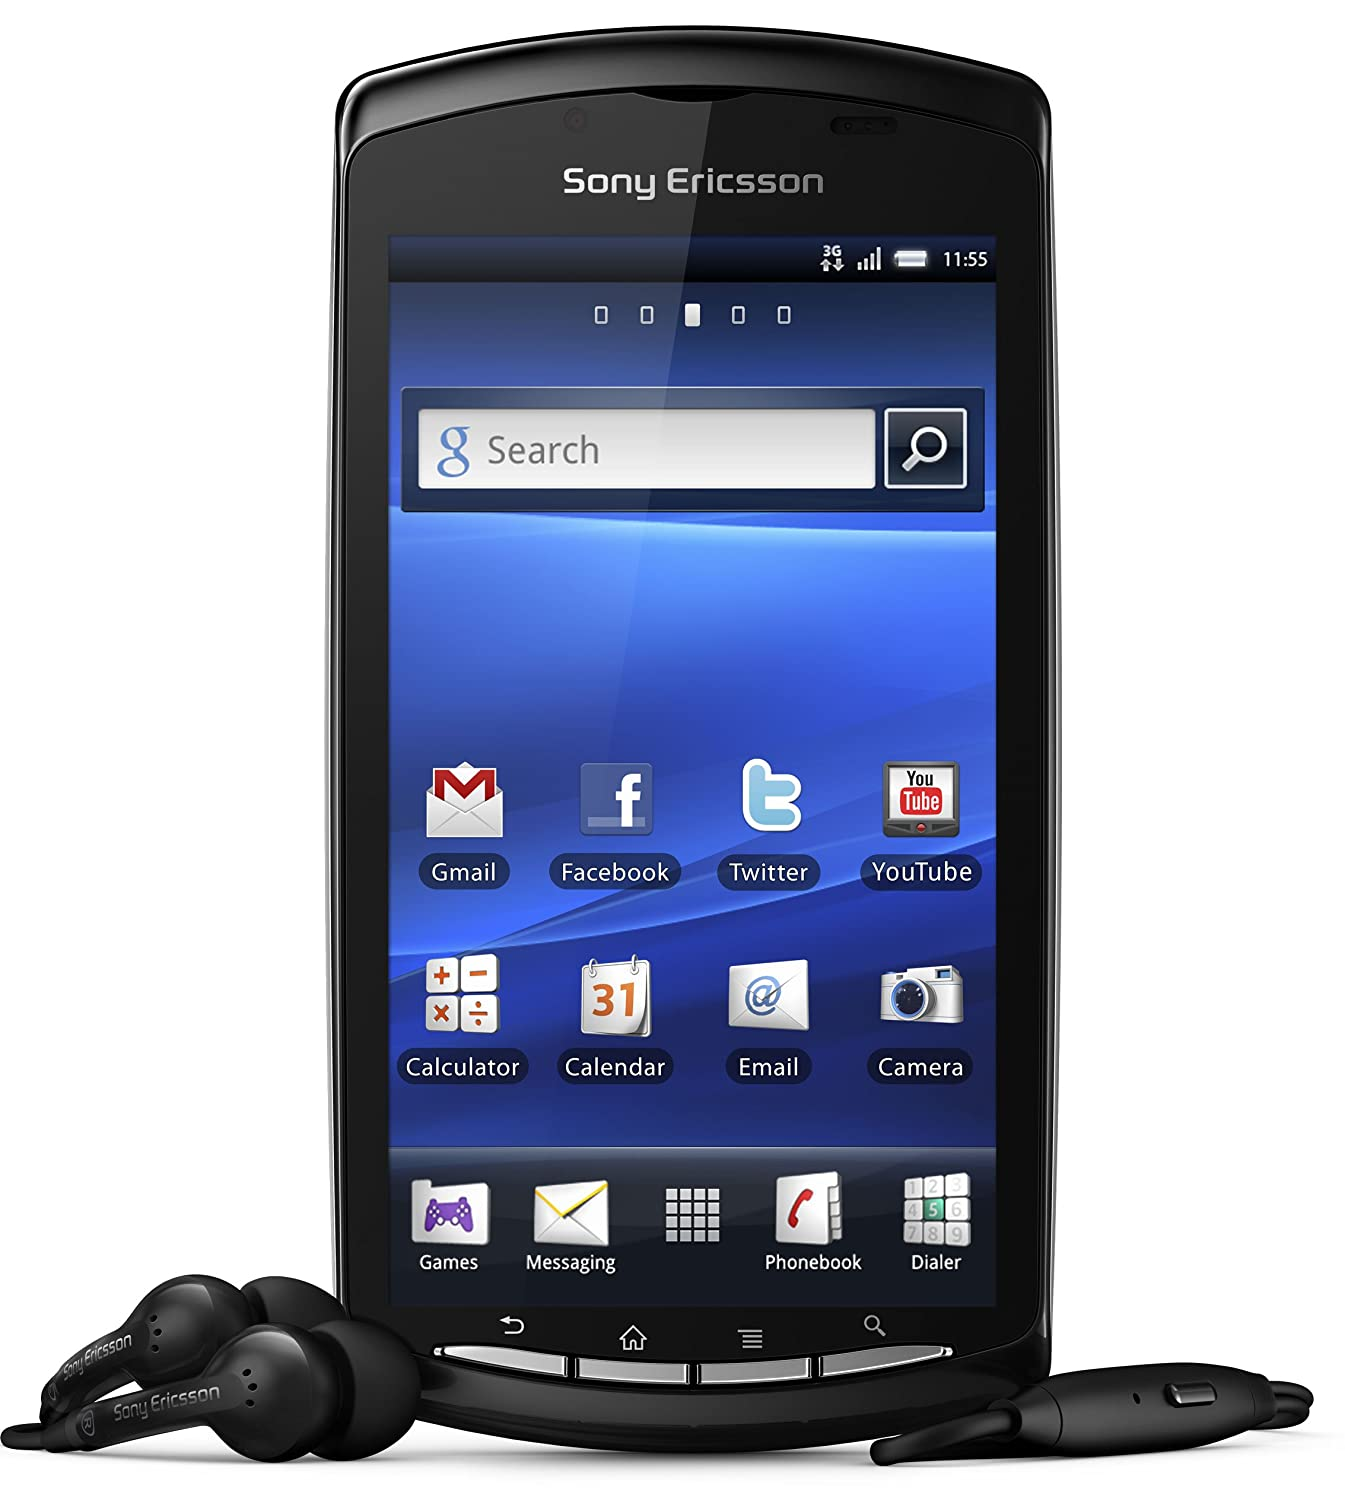 Phone Sony Ericson Android Phone amazon com sony ericsson xperia play r800i unlocked phone and gaming device with android os slide out gamepad cell phones